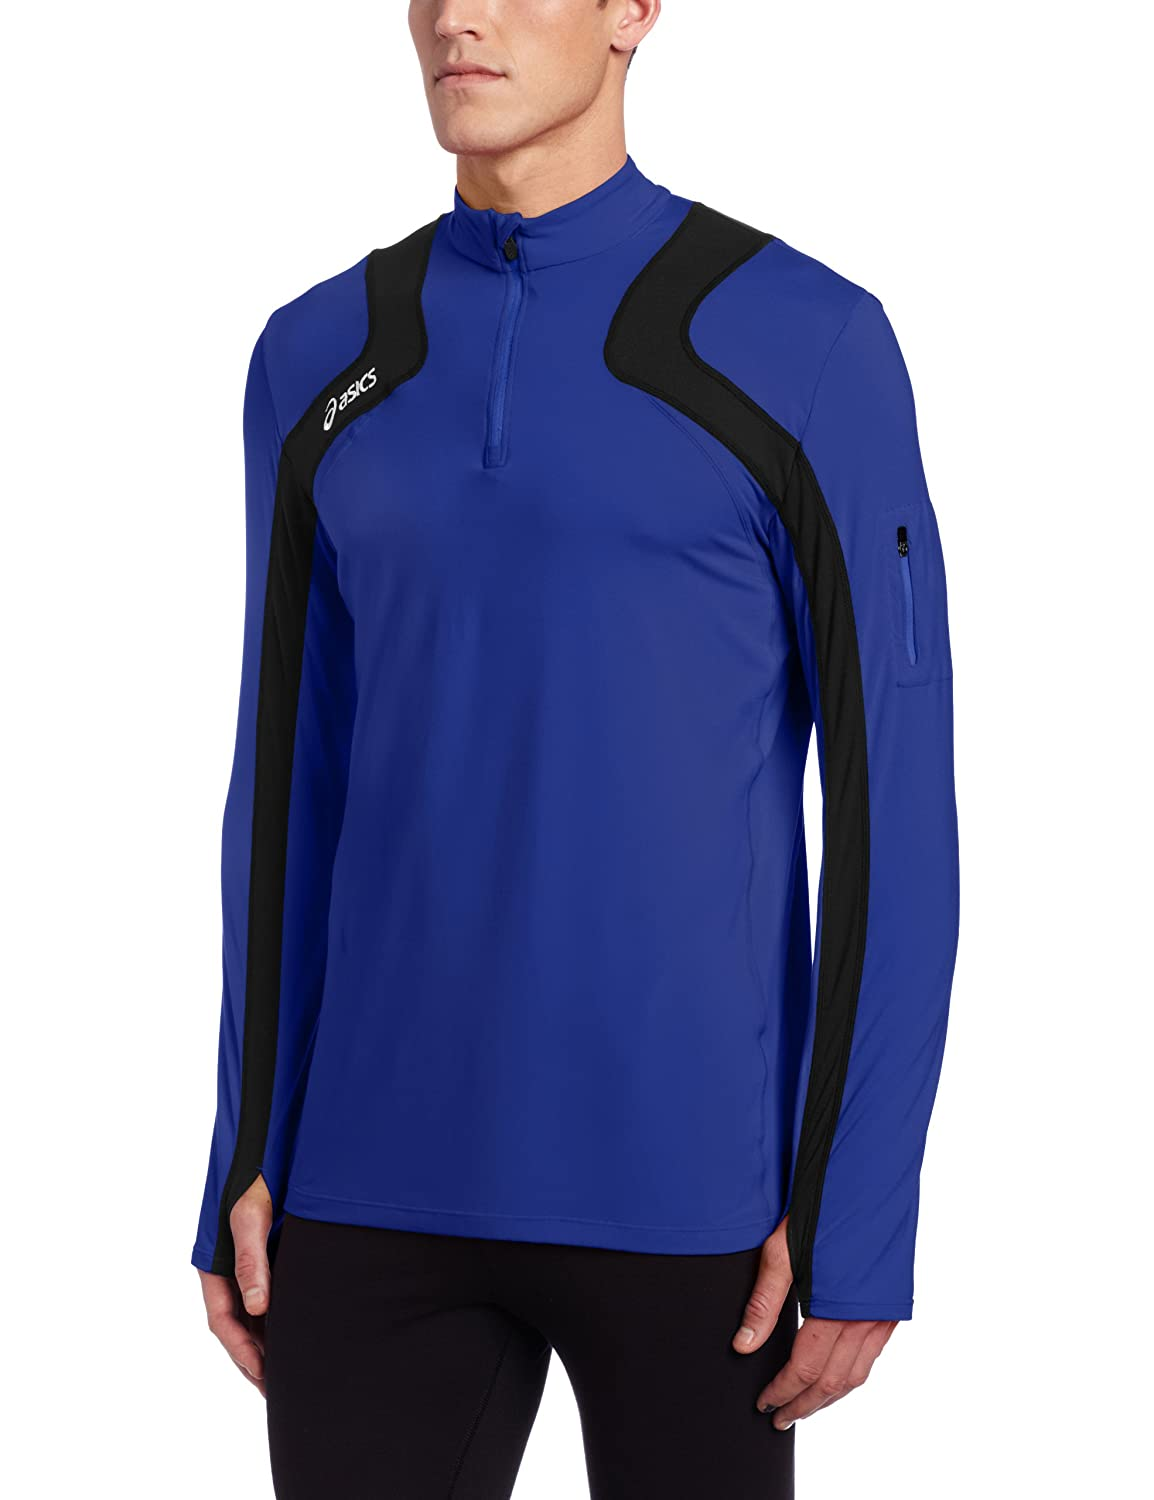 Asics Herren Team Tech Half Zip, Herren, Royal schwarz, Medium